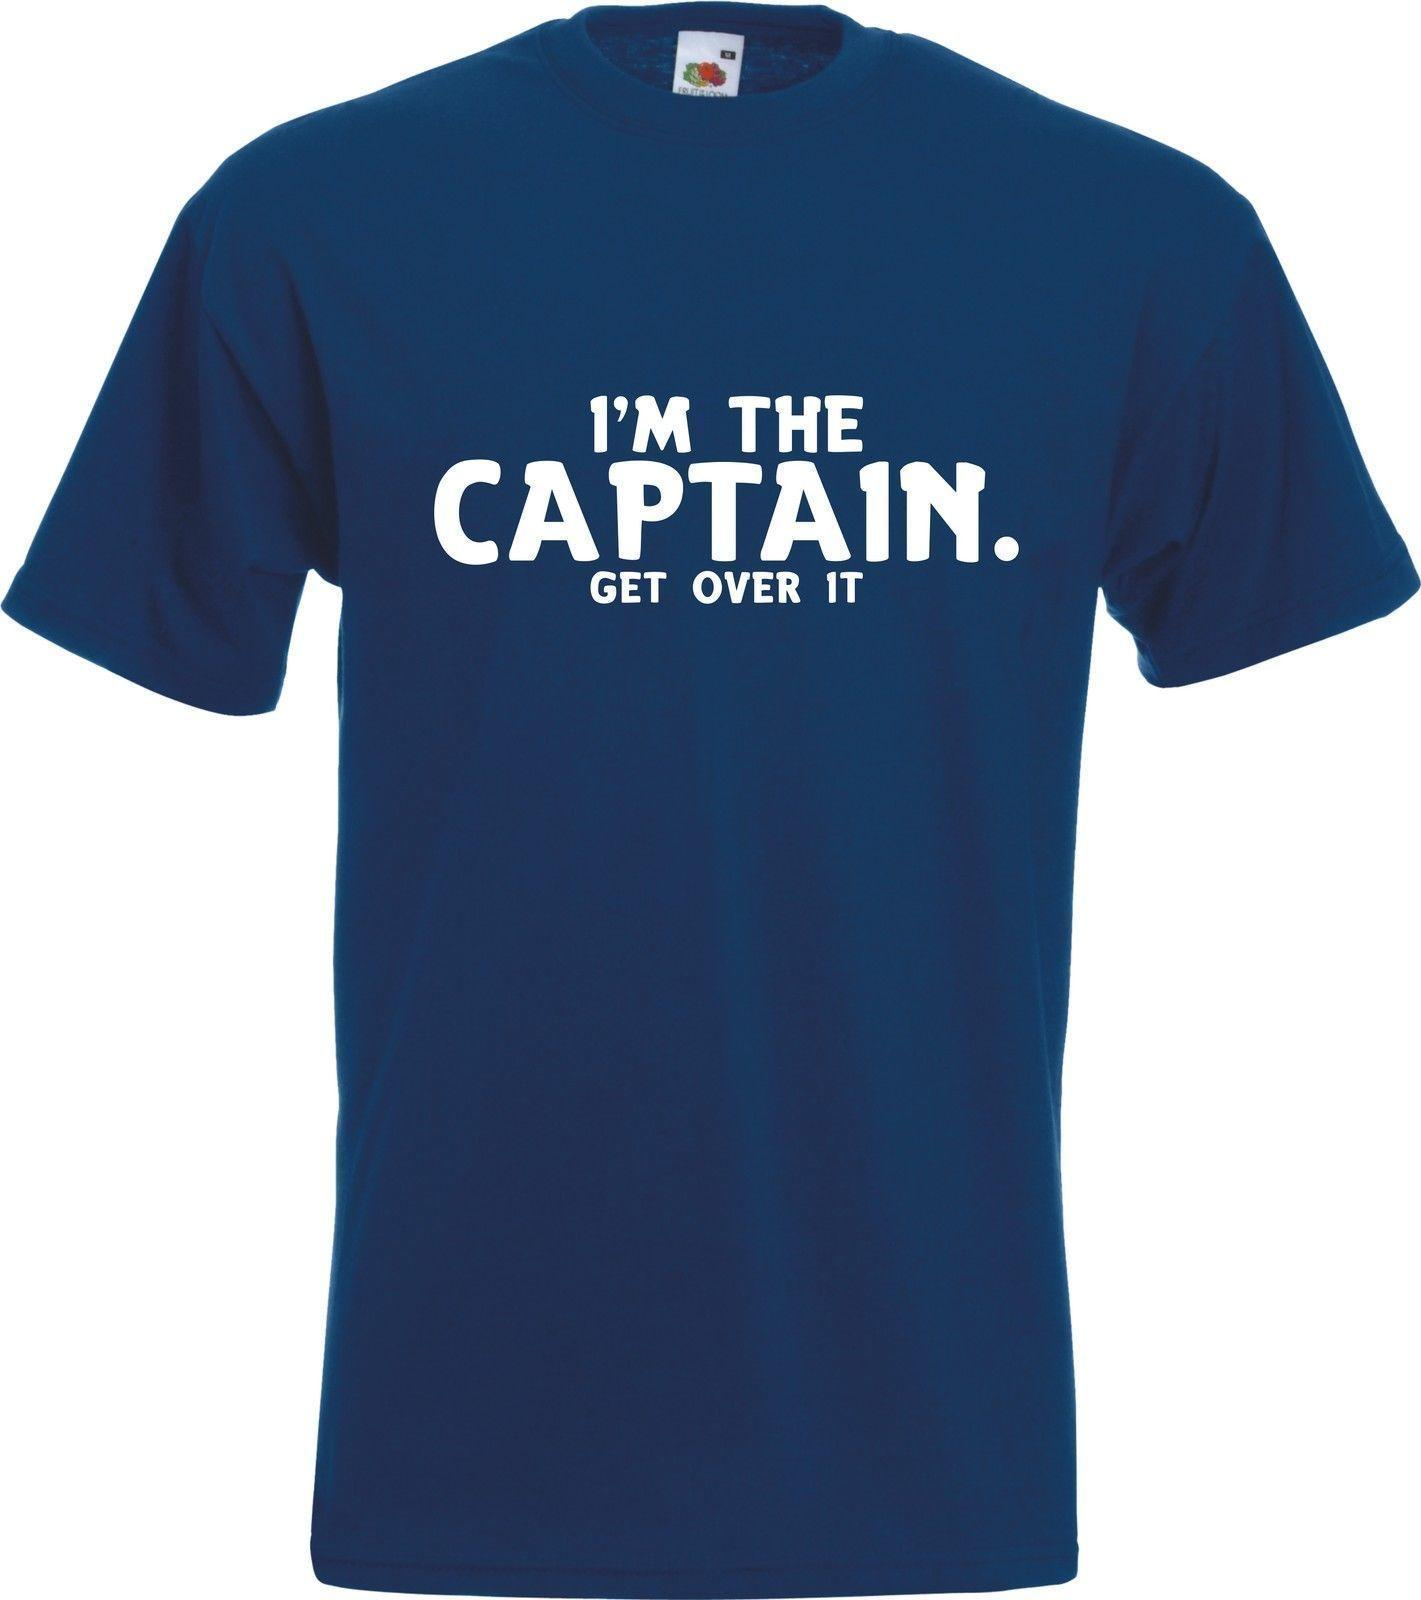 1d2bc4e7b I'M THE CAPTAIN - GET OVER IT - Funny Boating Yachting Boat Gift T-Shirt  Tshirt Funny free shipping Unisex Casual